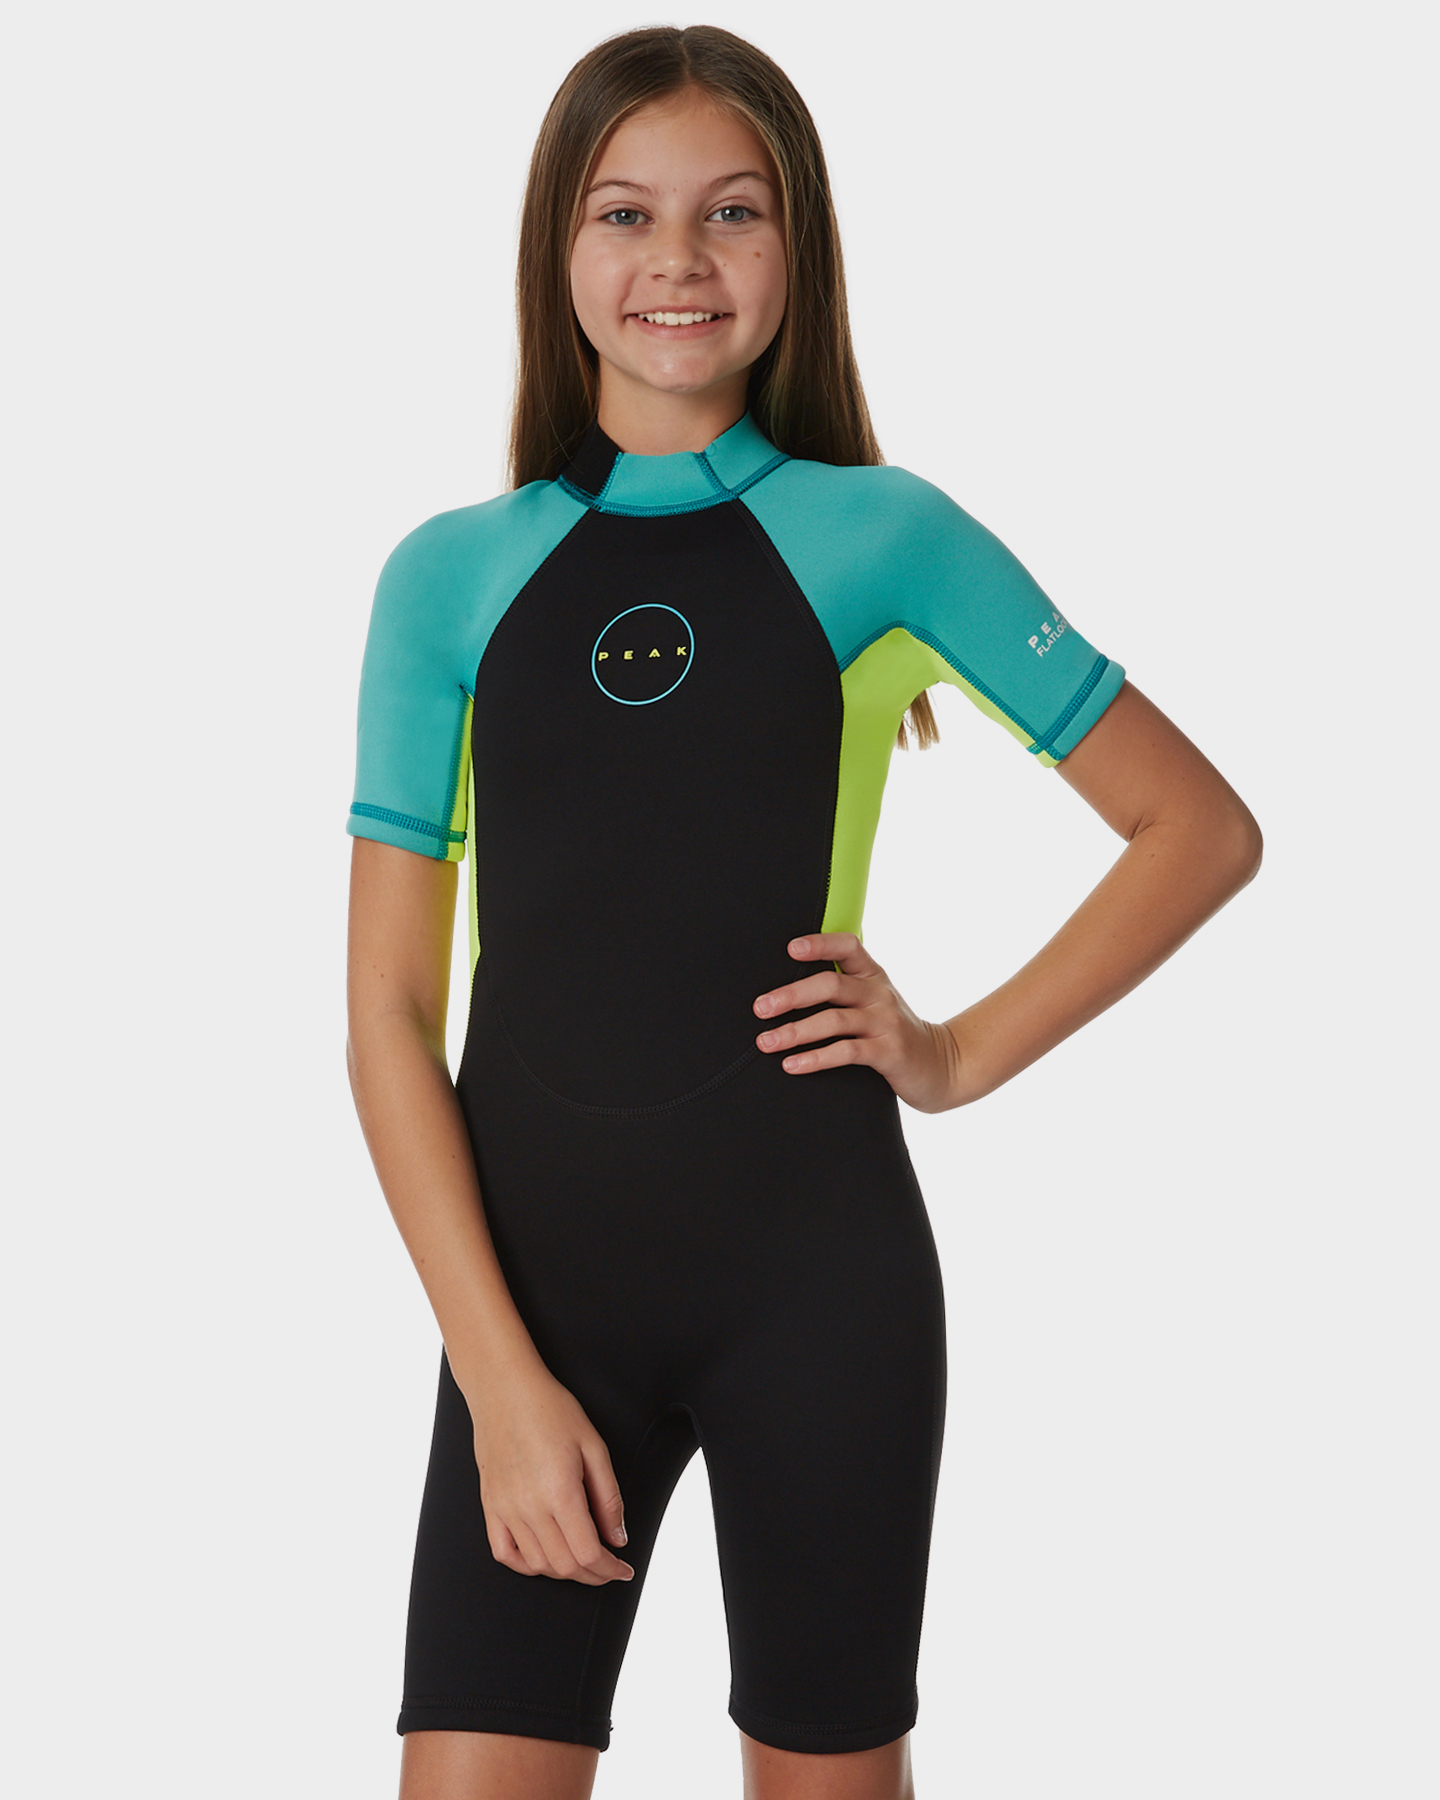 Girls Energy Ss Spring Suit Turquoise Turquoise